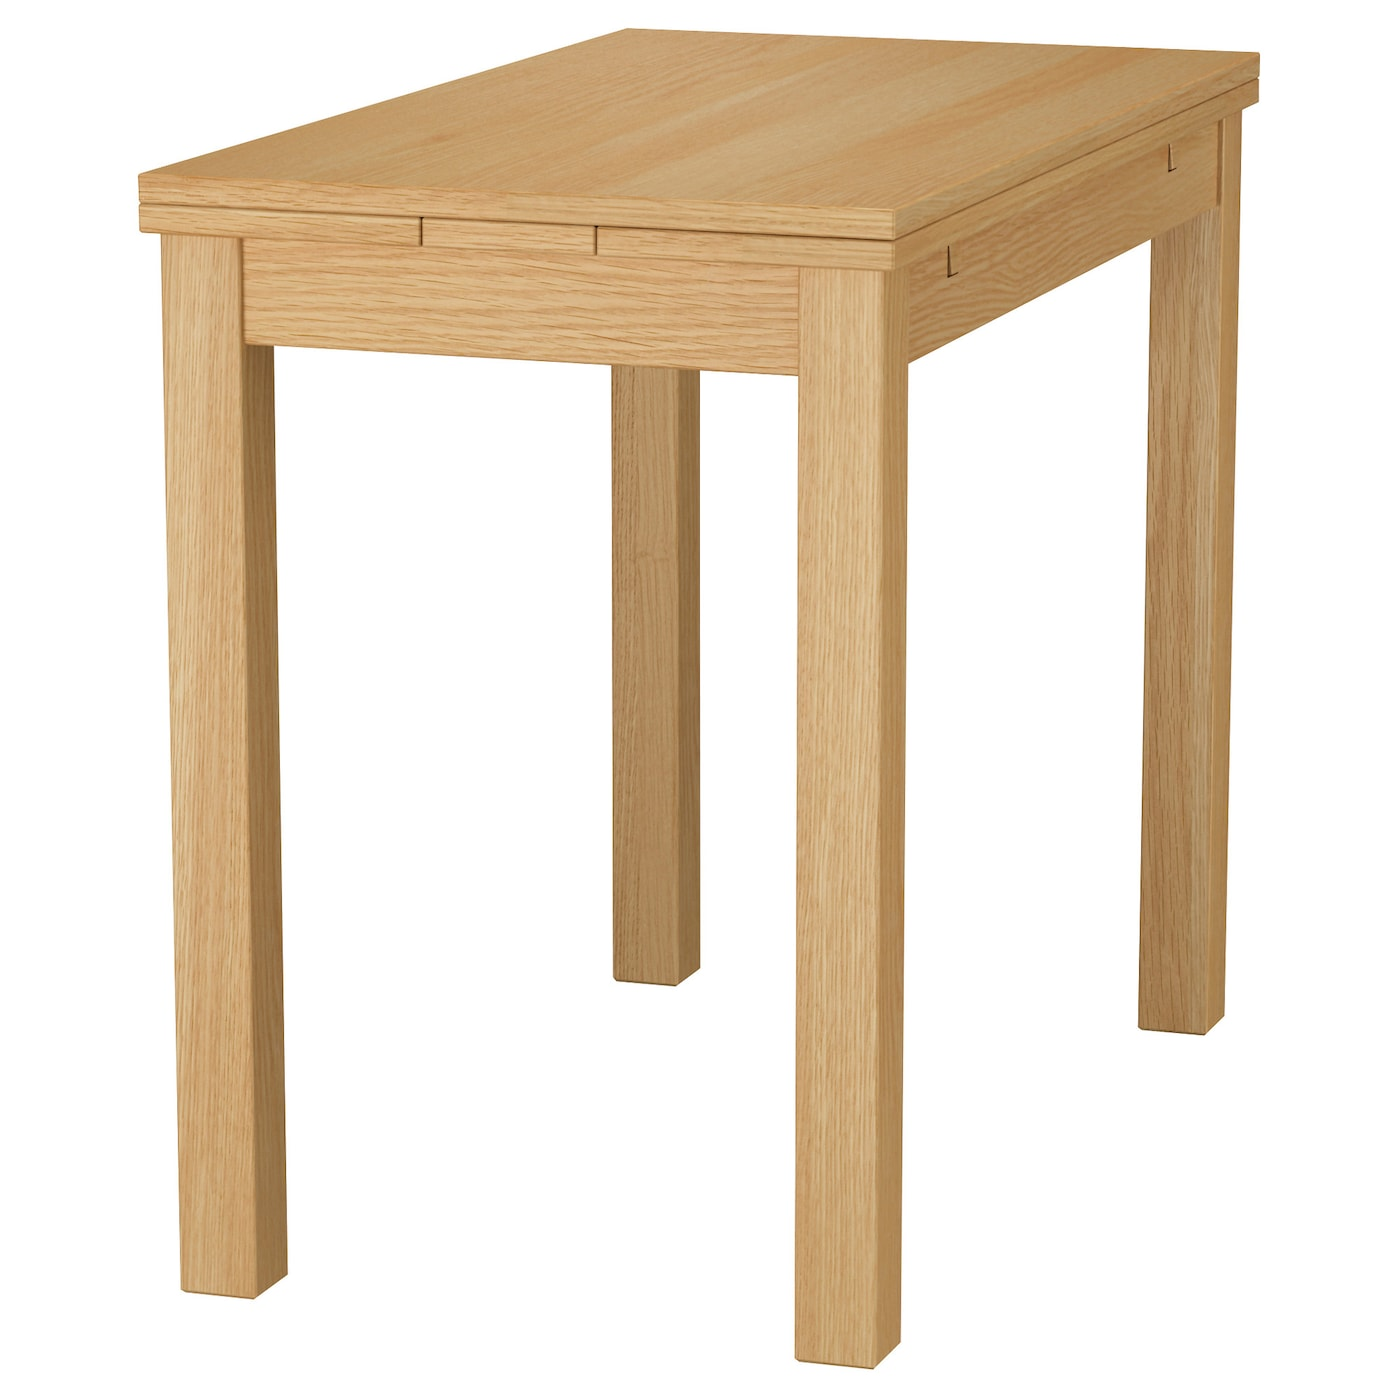 IKEA BJURSTA extendable table 2 pull-out leaves included. Ideal as an end table against a wall.